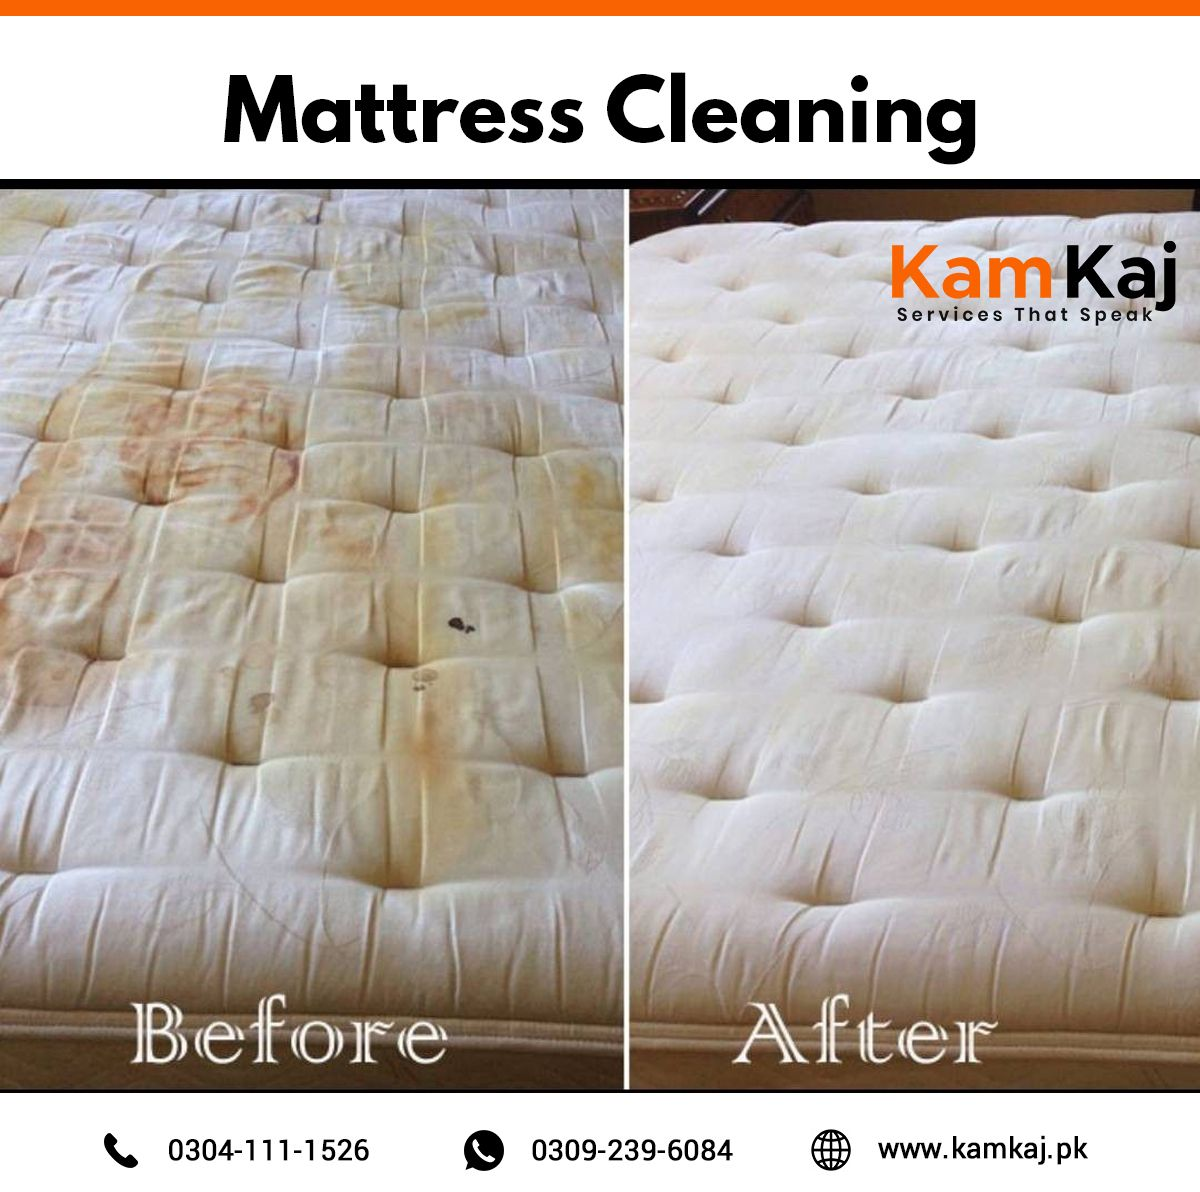 Mattress Cleaning in 29  Mattress cleaning, Mattress cleaning